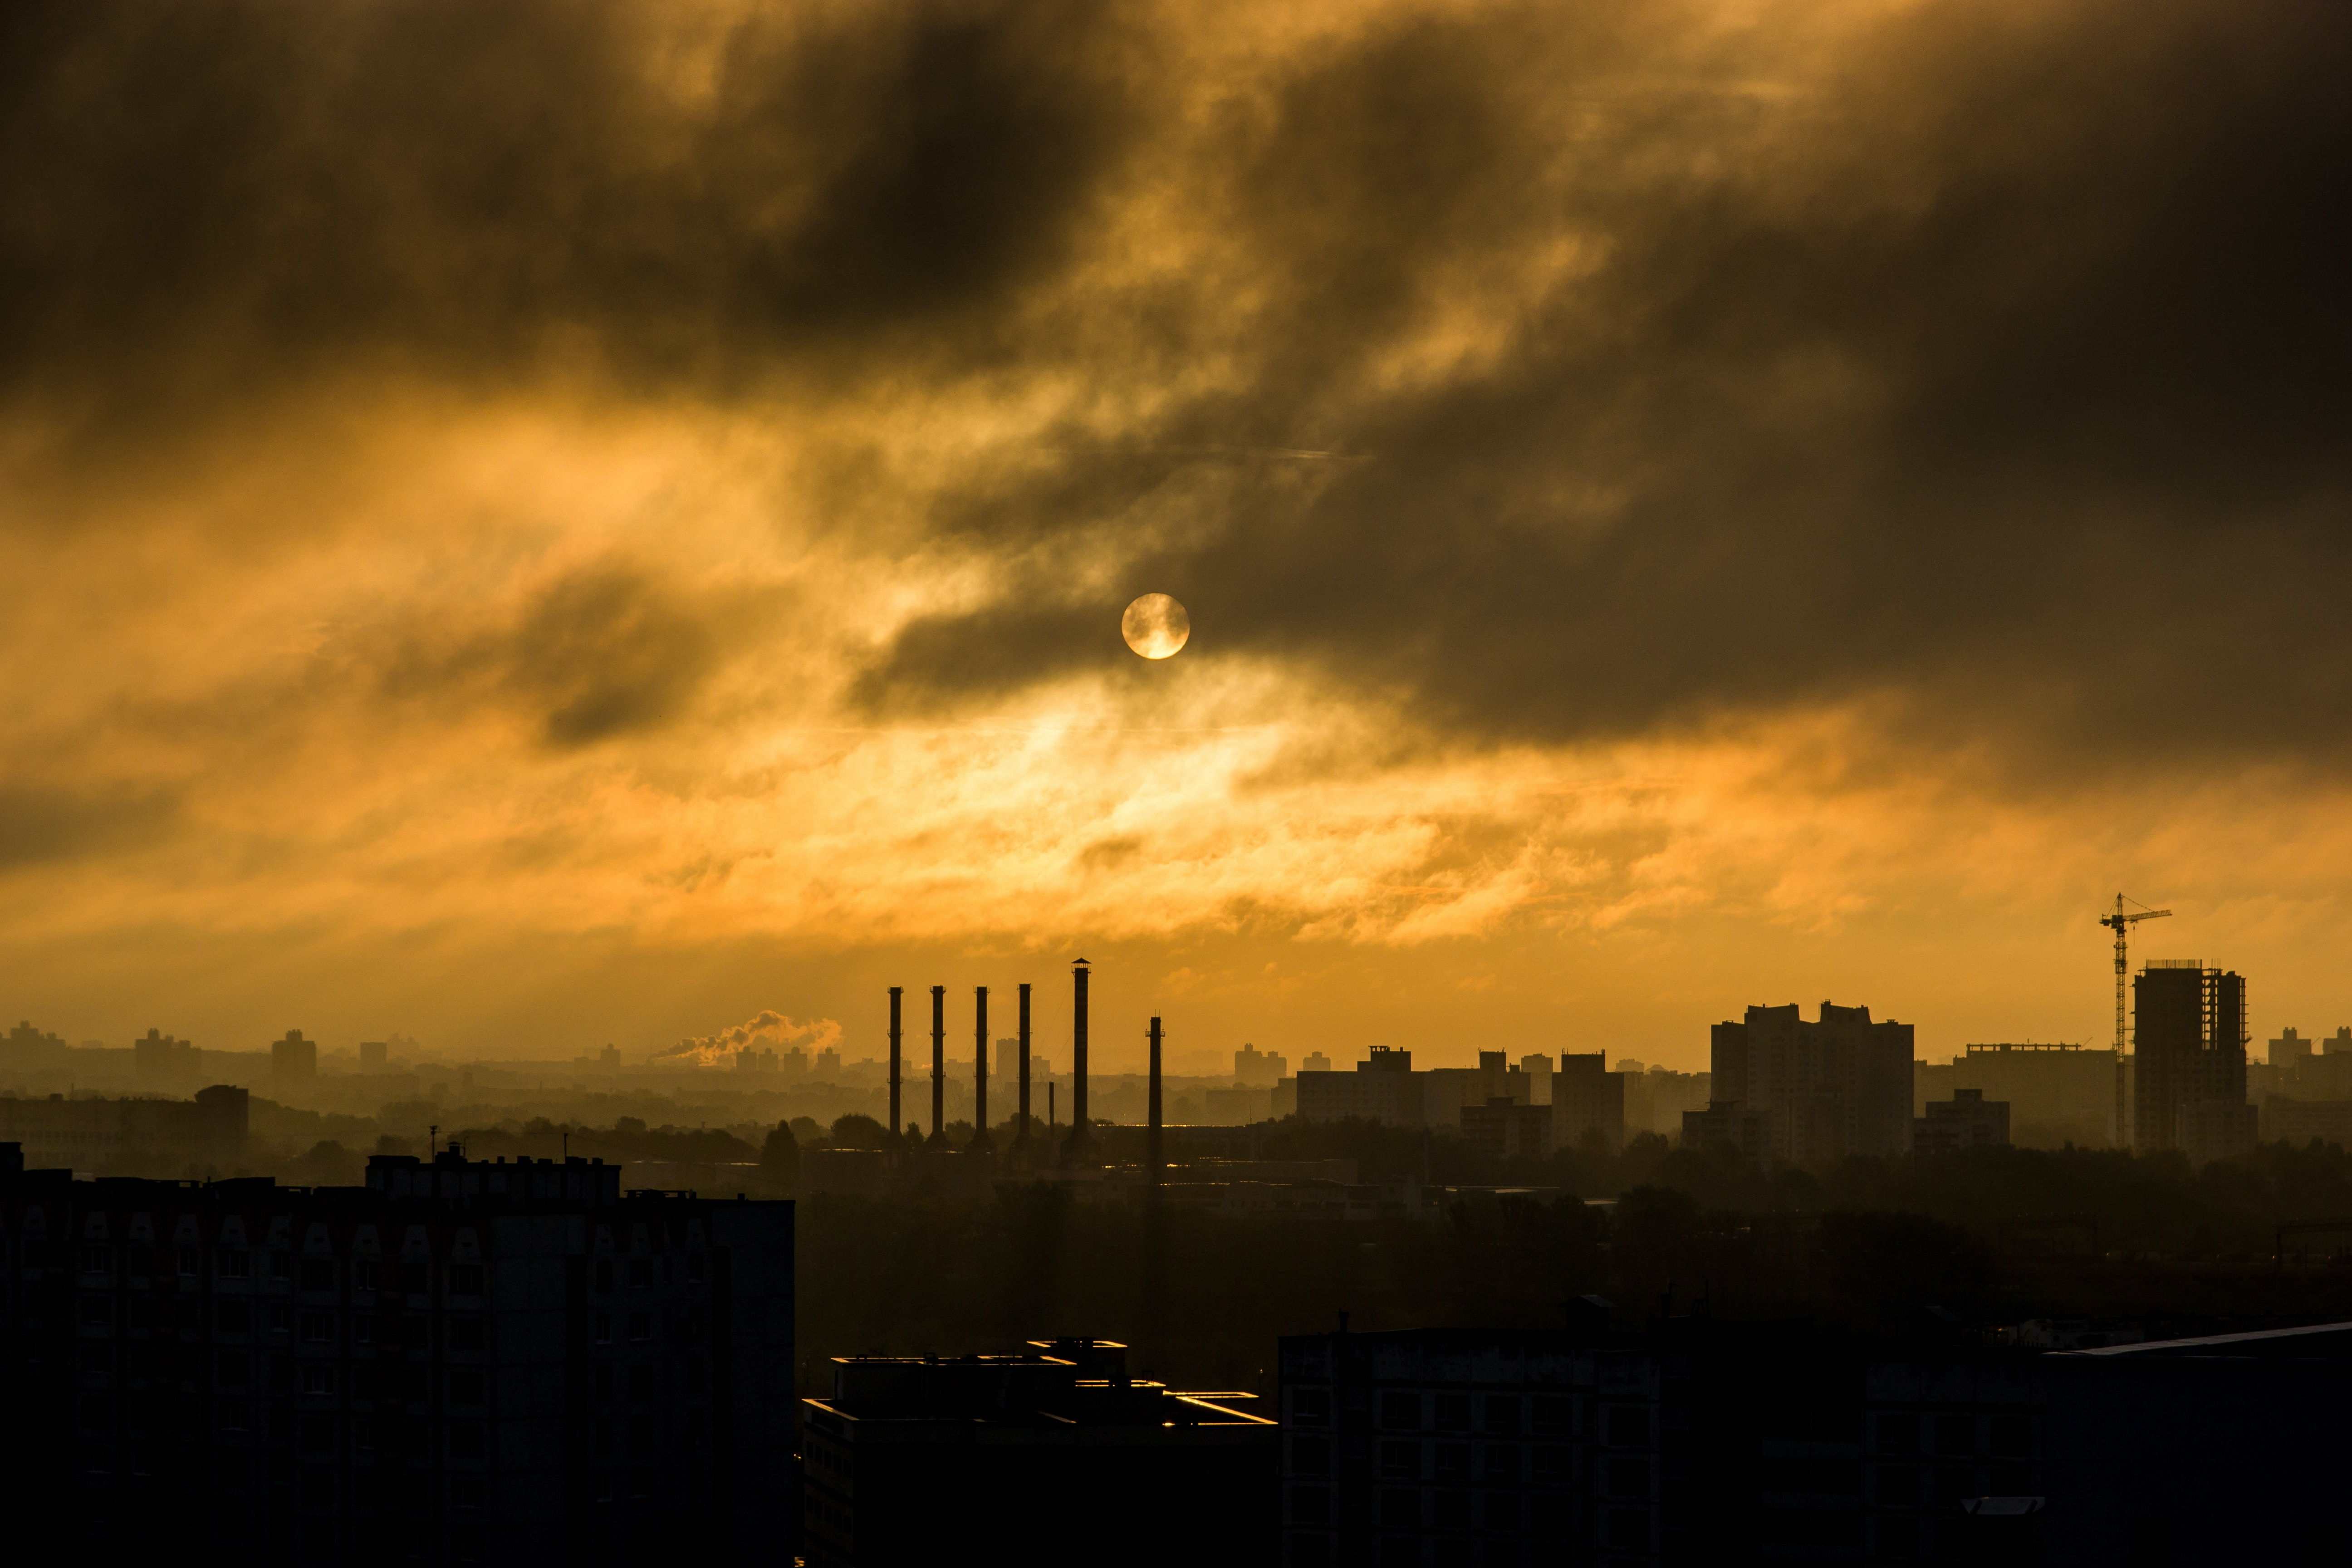 The sun is surrounded by clouds above the city of Минск during sunset.